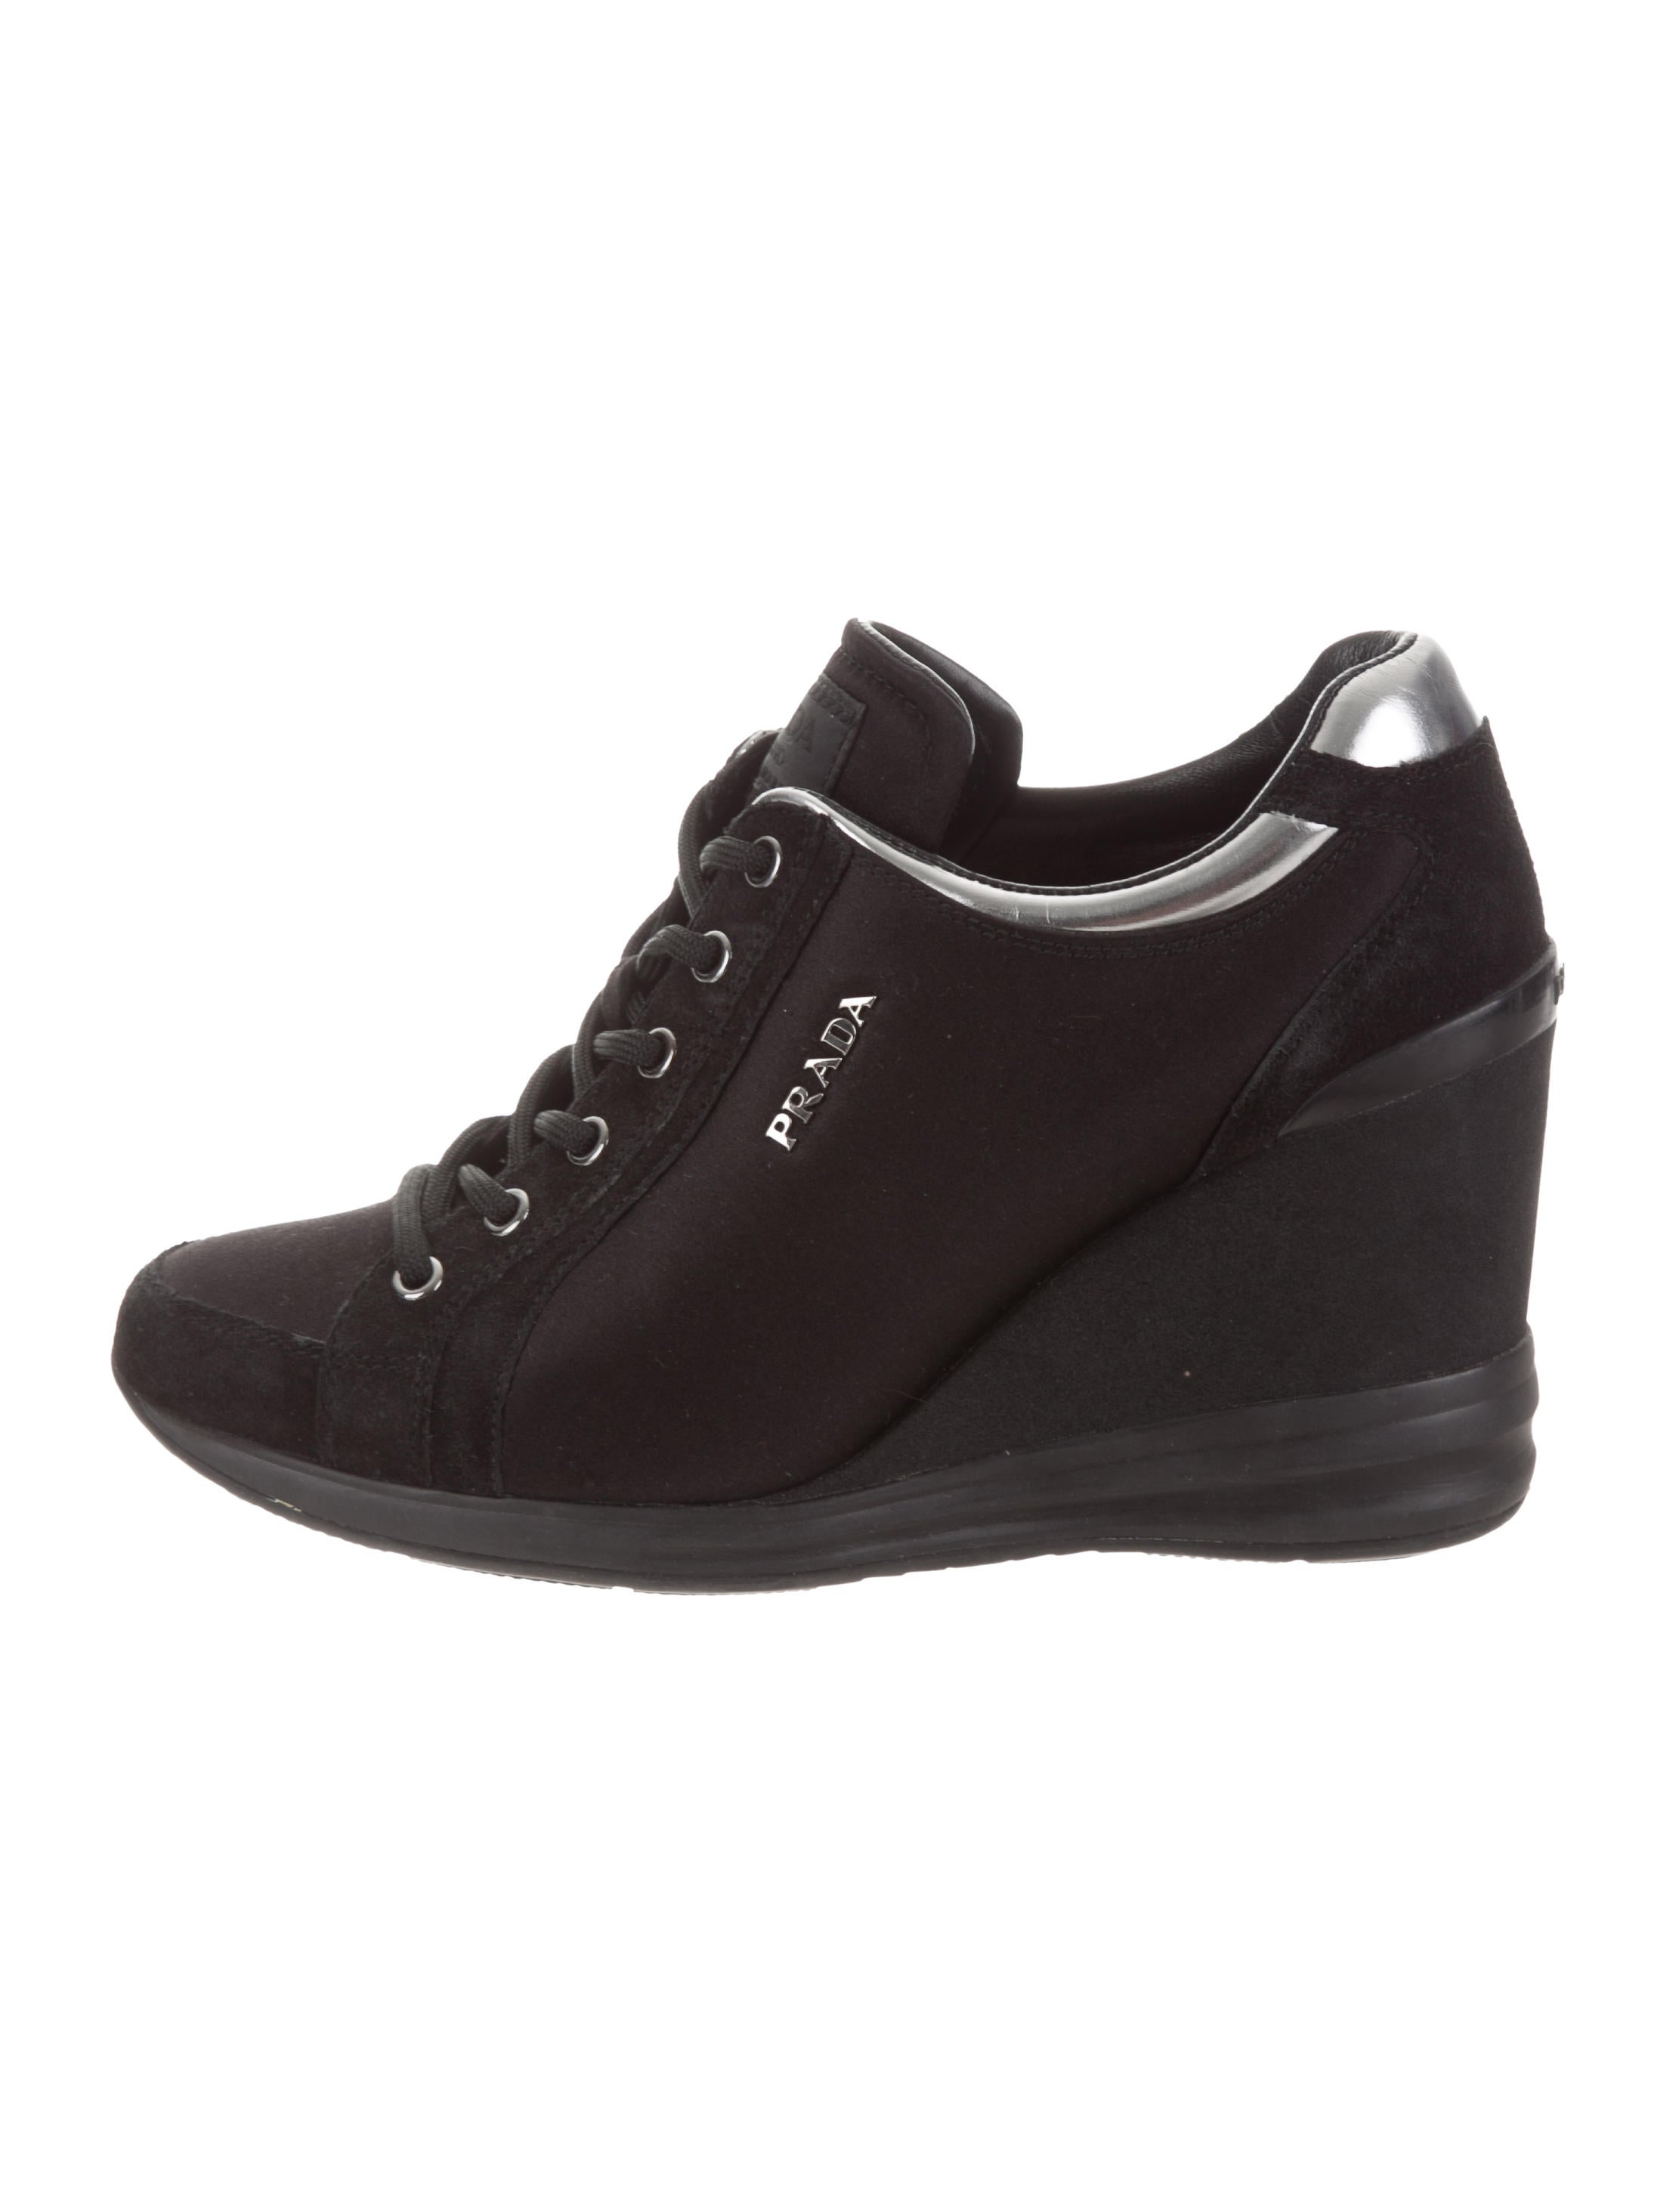 1470c0b2ab7 Women · Shoes  Prada Sport Suede Wedge Boots. Suede Wedge Boots